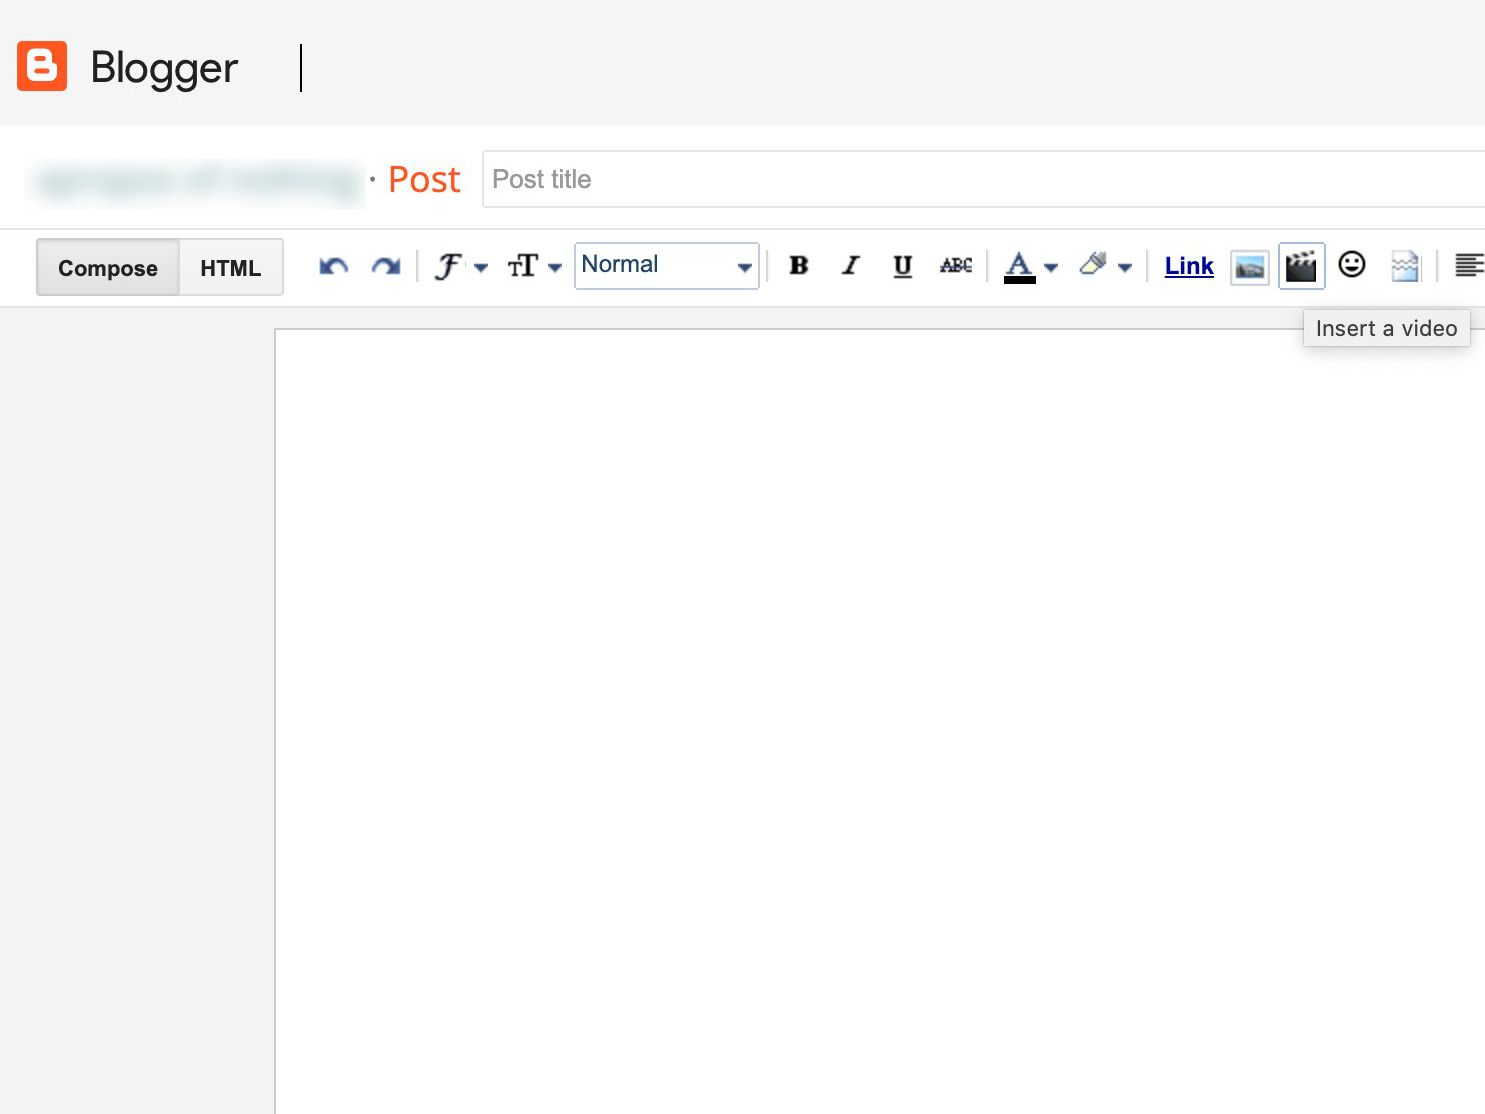 Blogger Compose window with